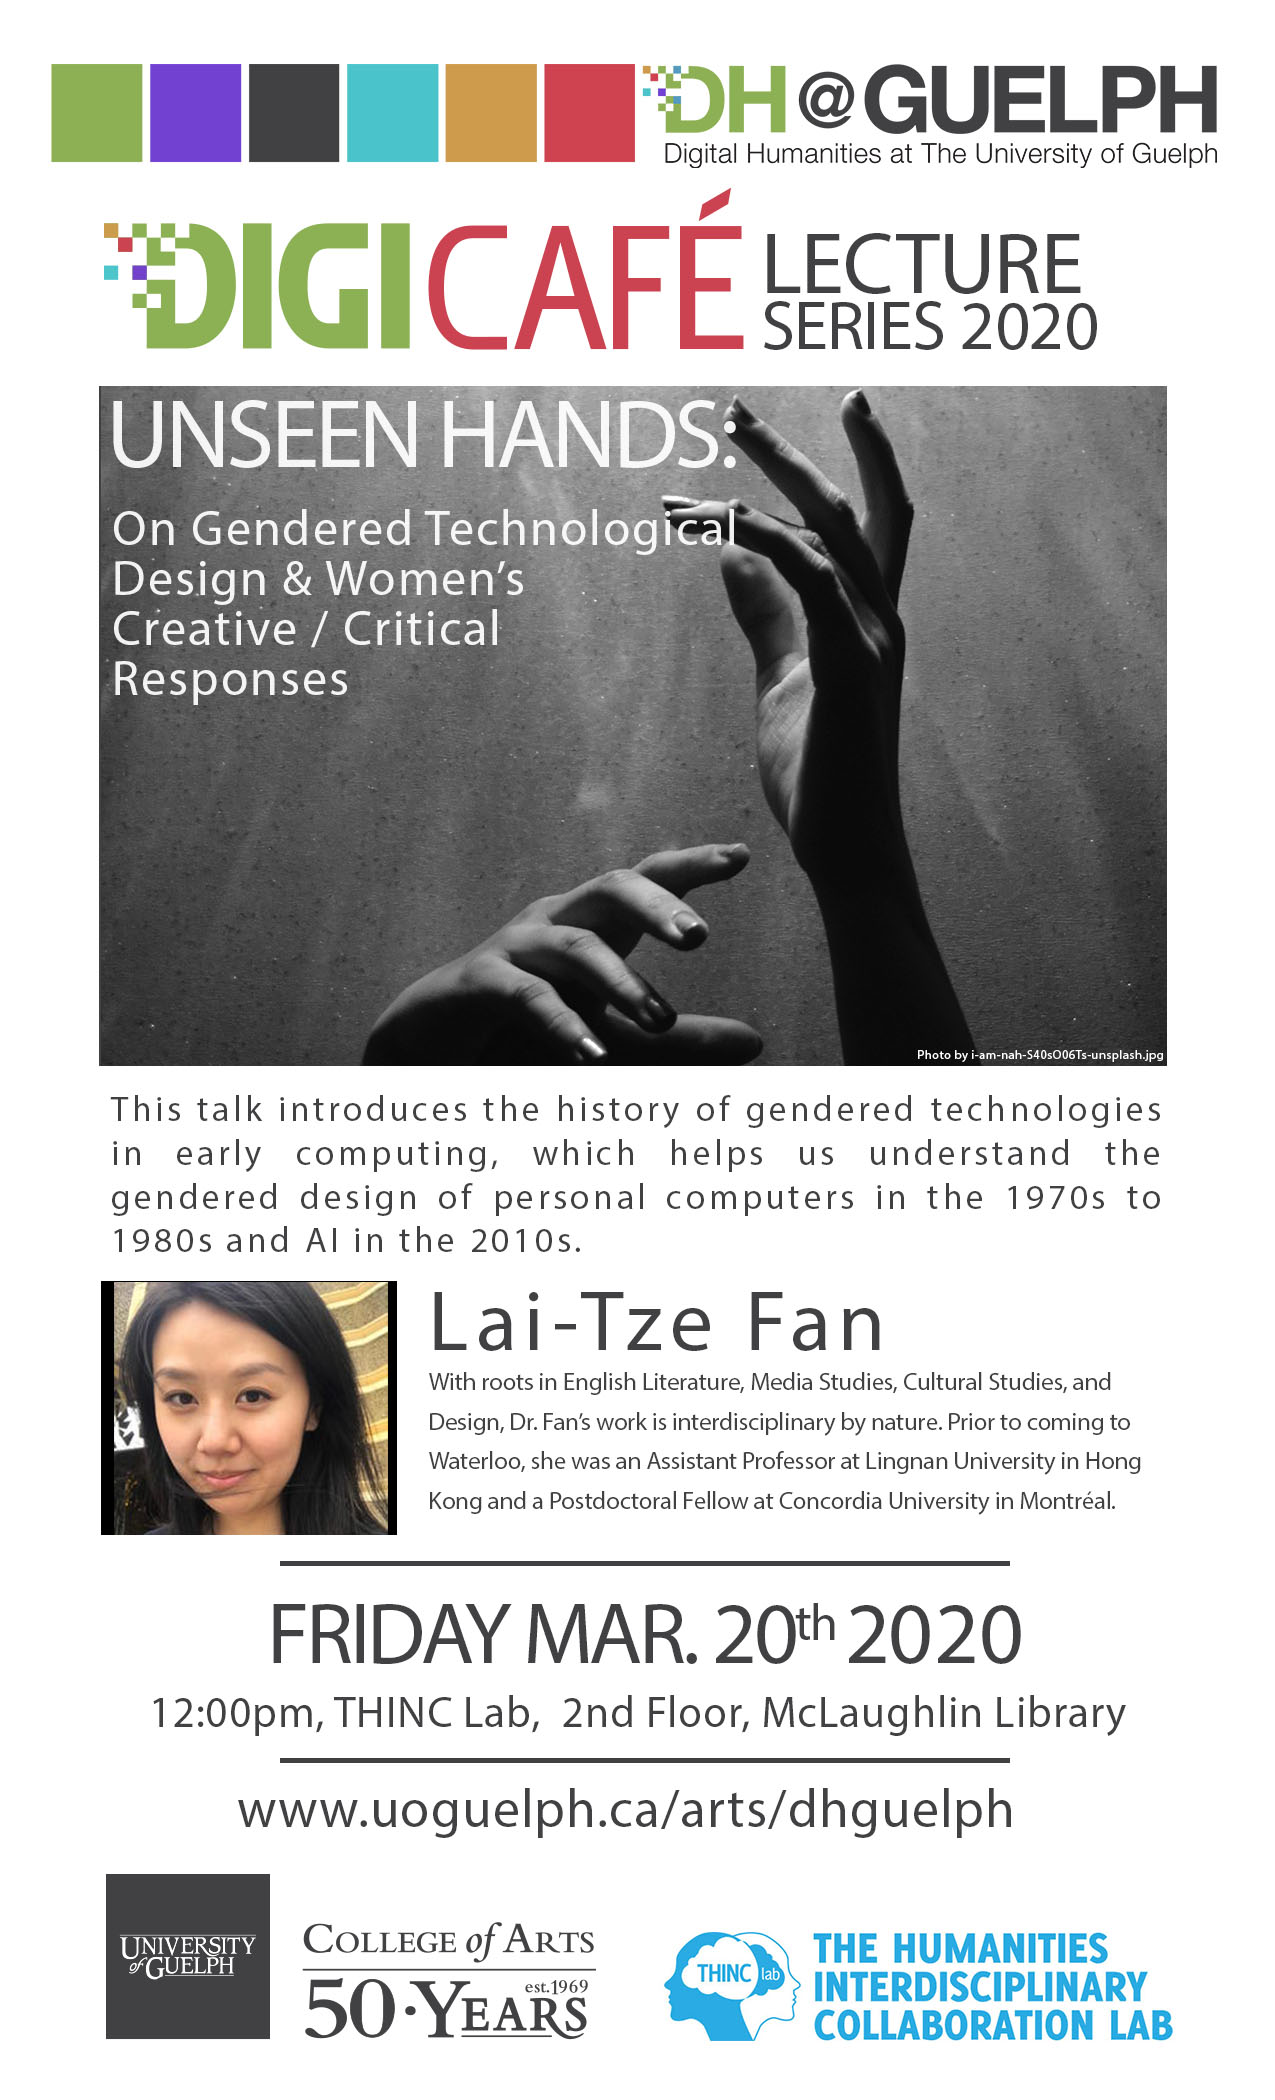 Poster depicting hands in the air and a headshot of Lai-Tze Fan